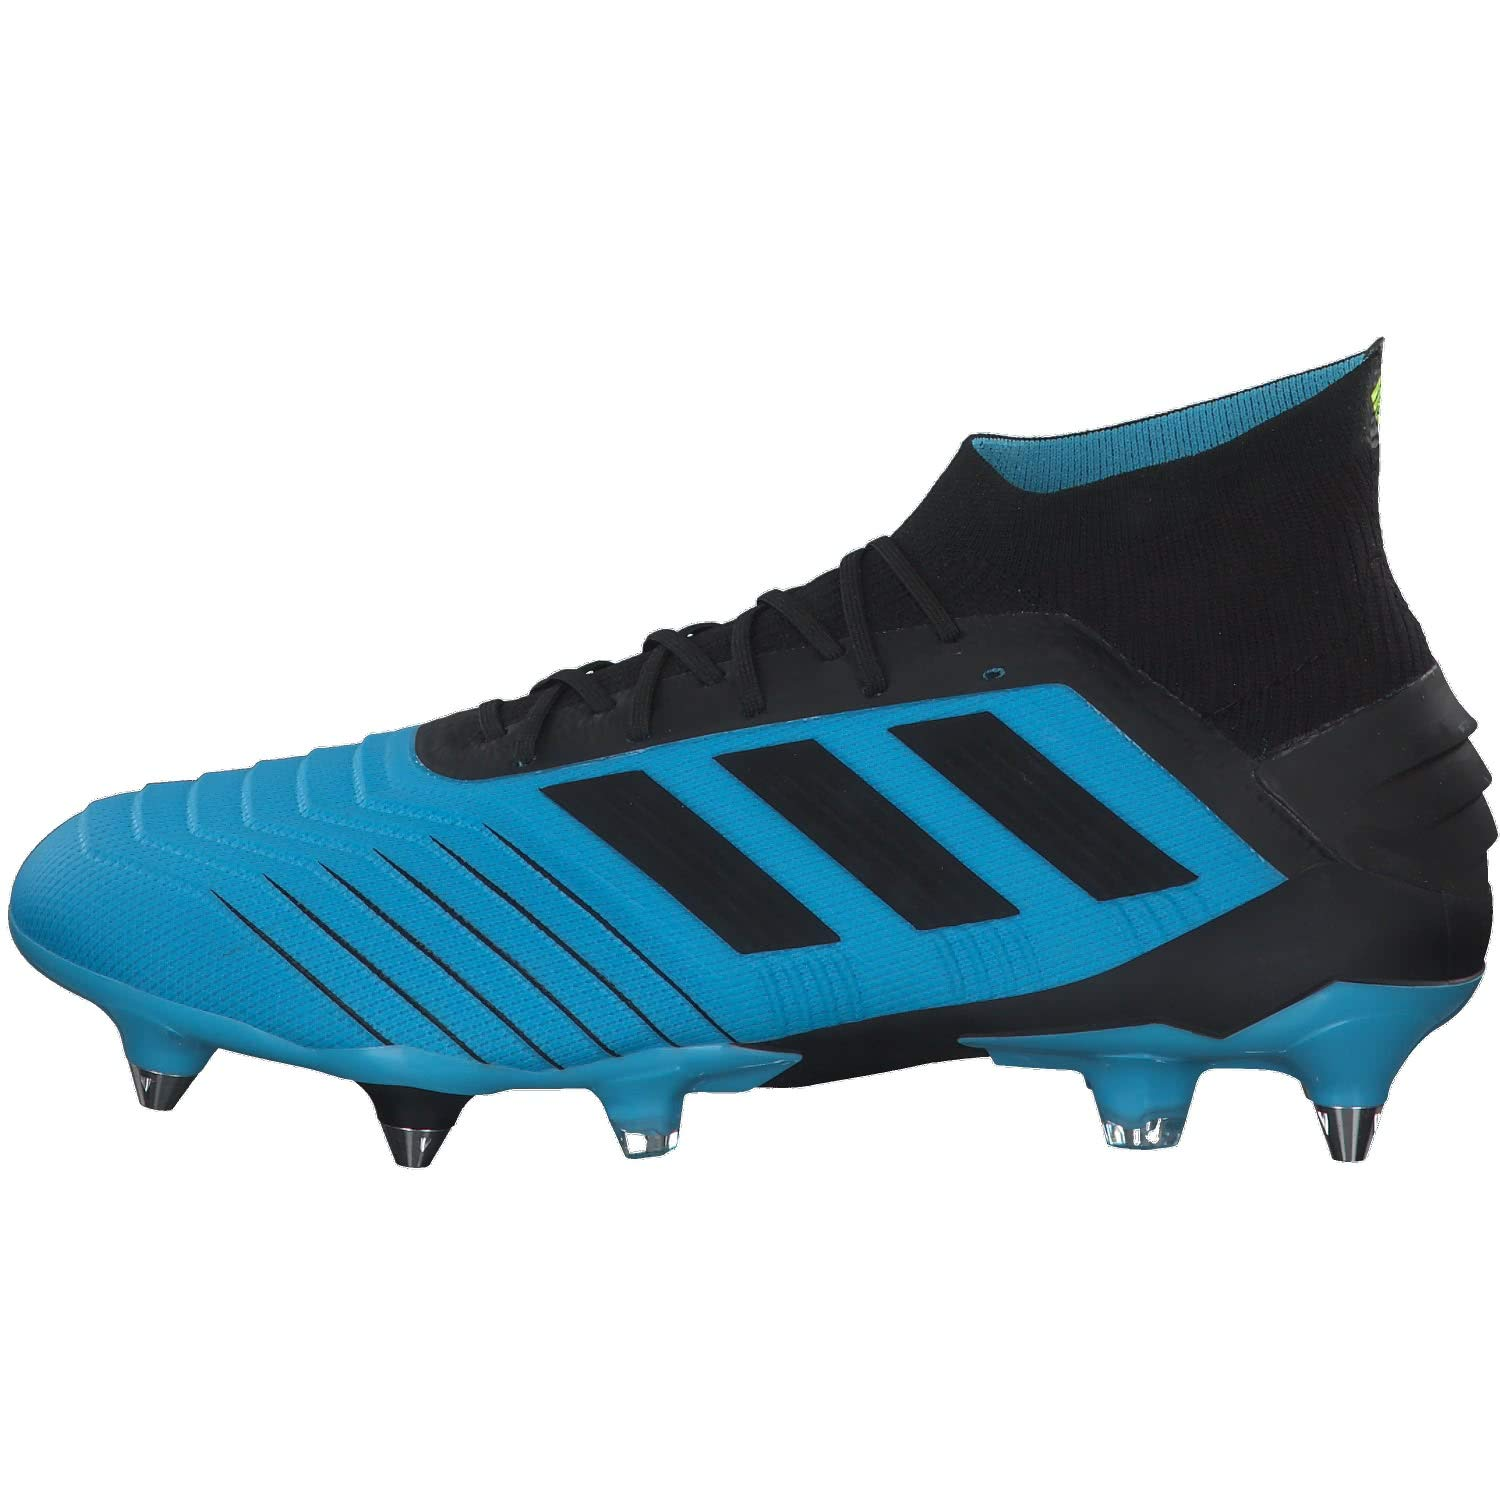 amazing price best deals on new cheap adidas Men's Predator 19.1 Sg Football Boots: Amazon.co.uk ...